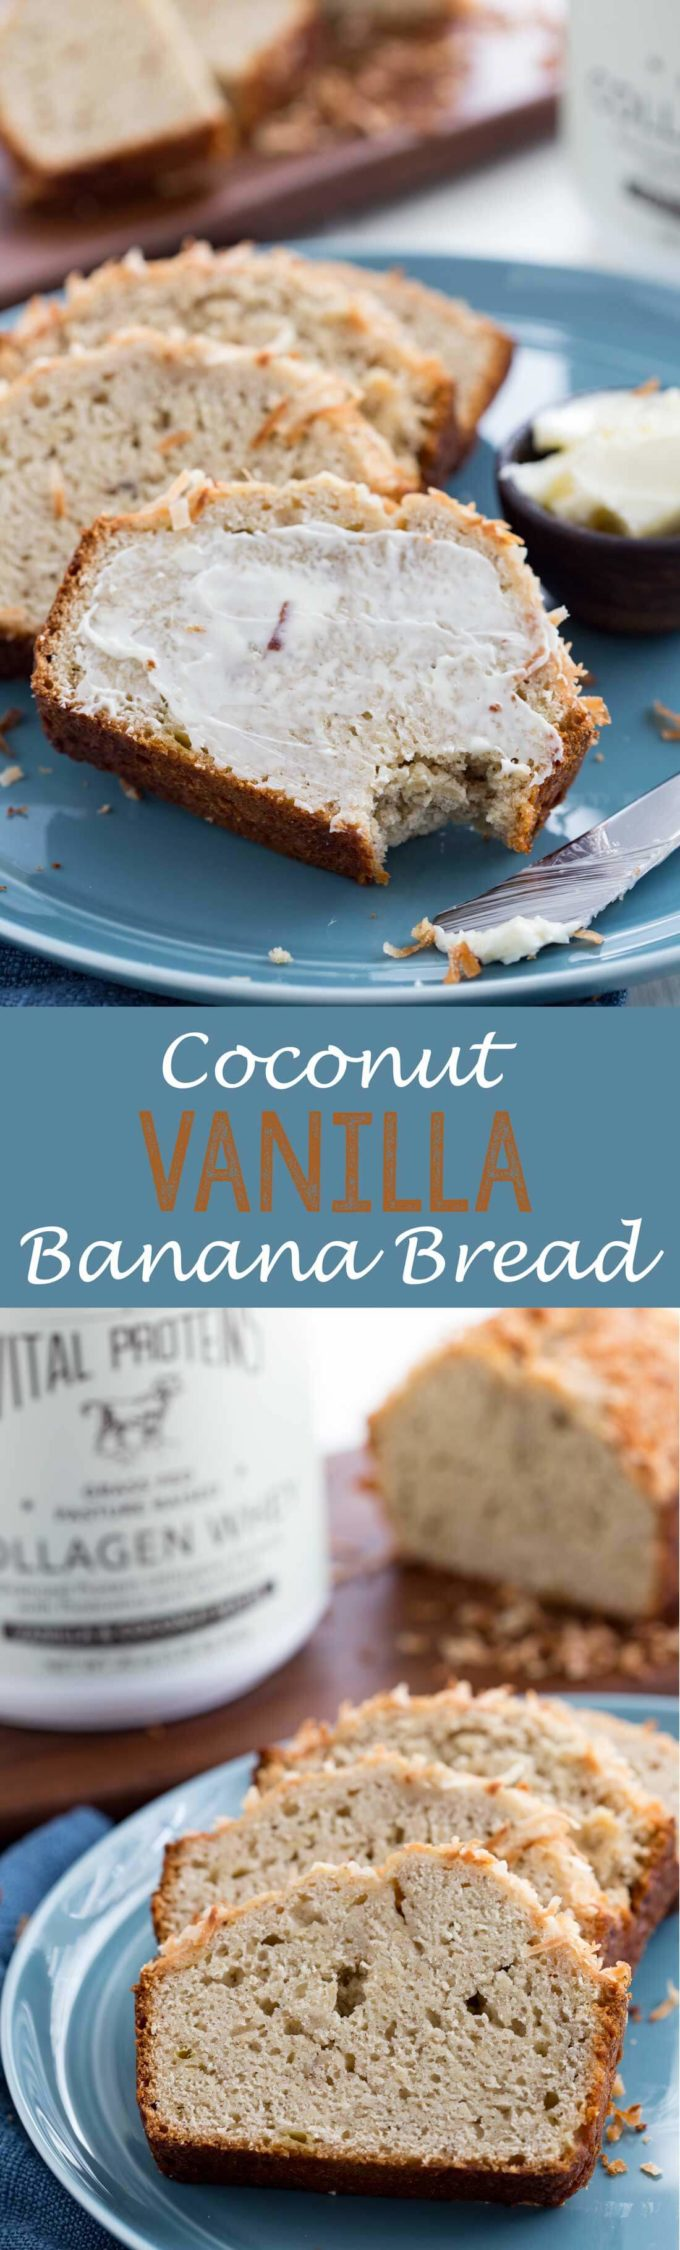 Coconut Vanilla banana bread is a moist and tender bread with crunchy coconut and is packed with protein.